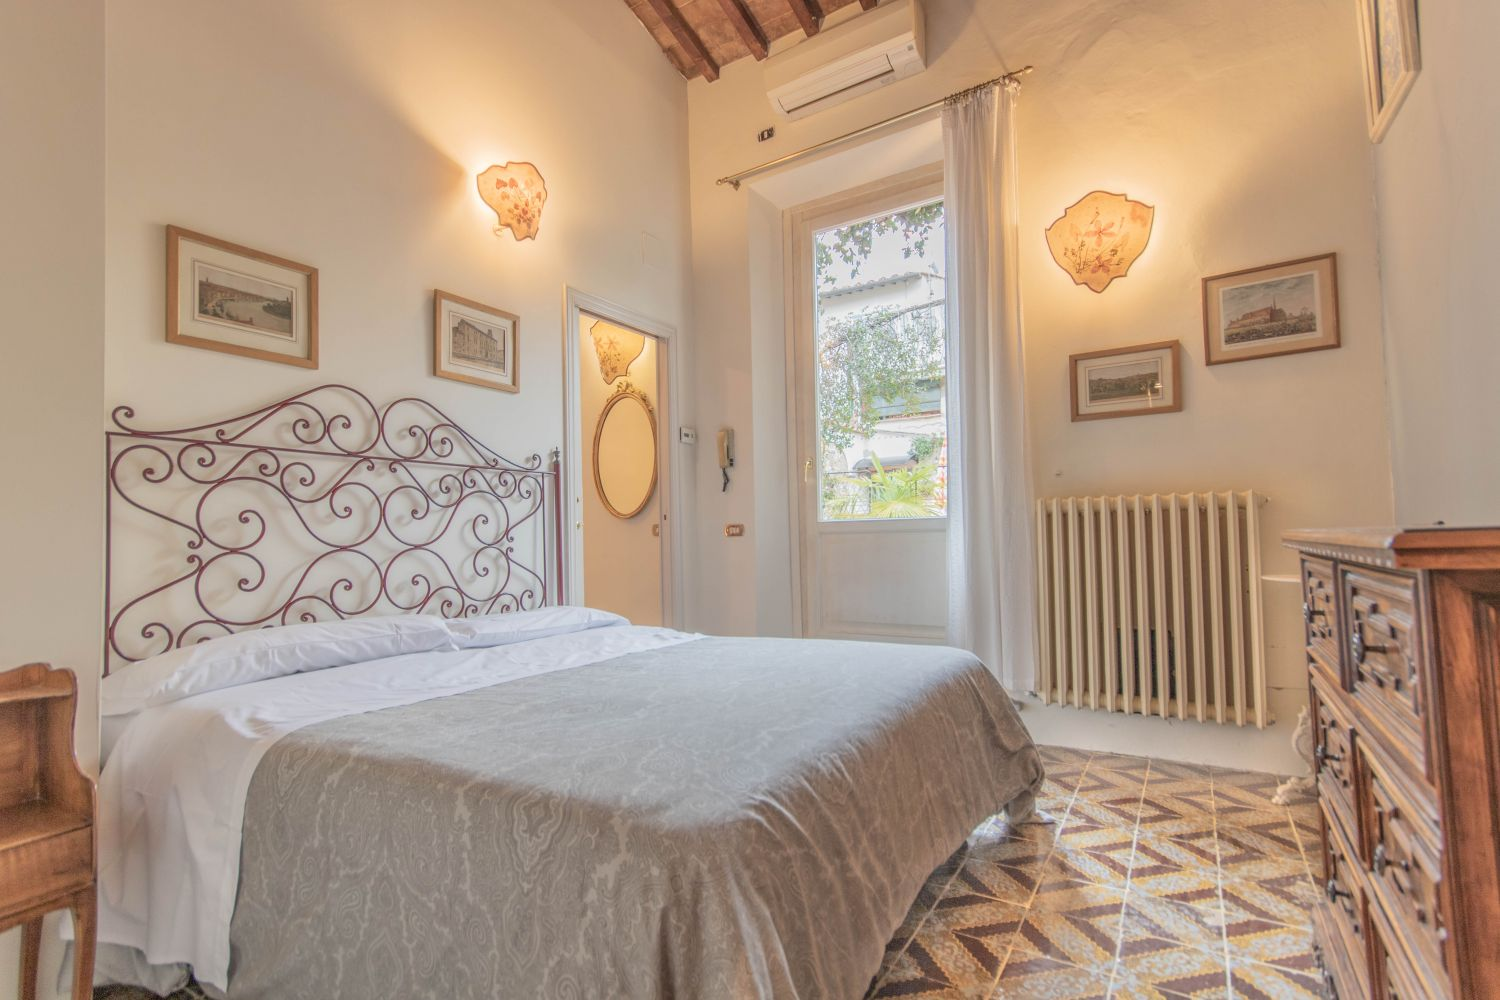 Romantic Bed And Breakfast Florence Center Italy Relais